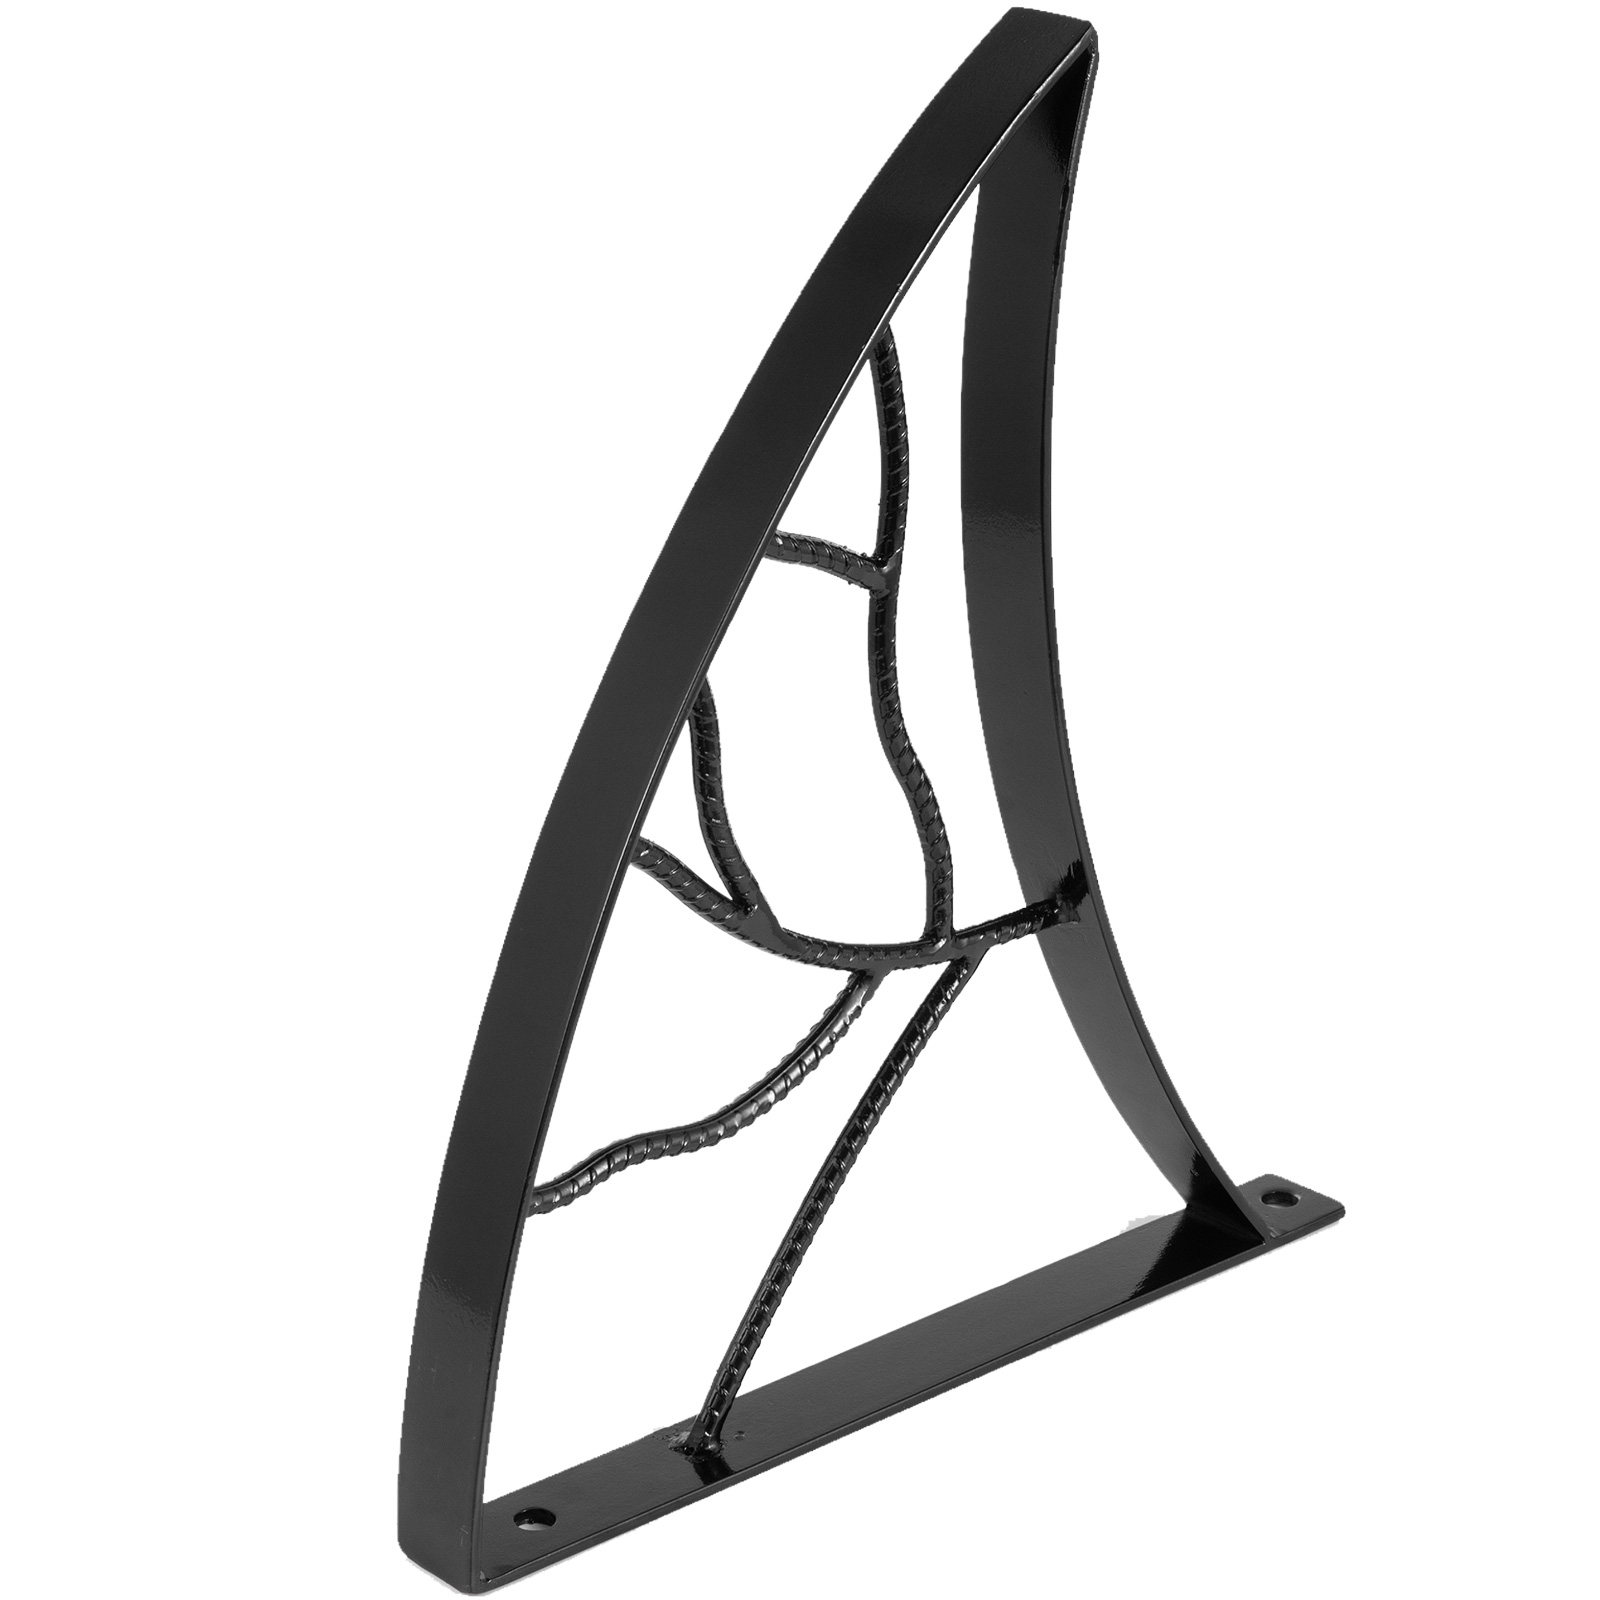 Handrails-for-Outdoor-Step-Wrought-Iron-Handrail-20-034-Length-Porch-Deck-Railing thumbnail 46